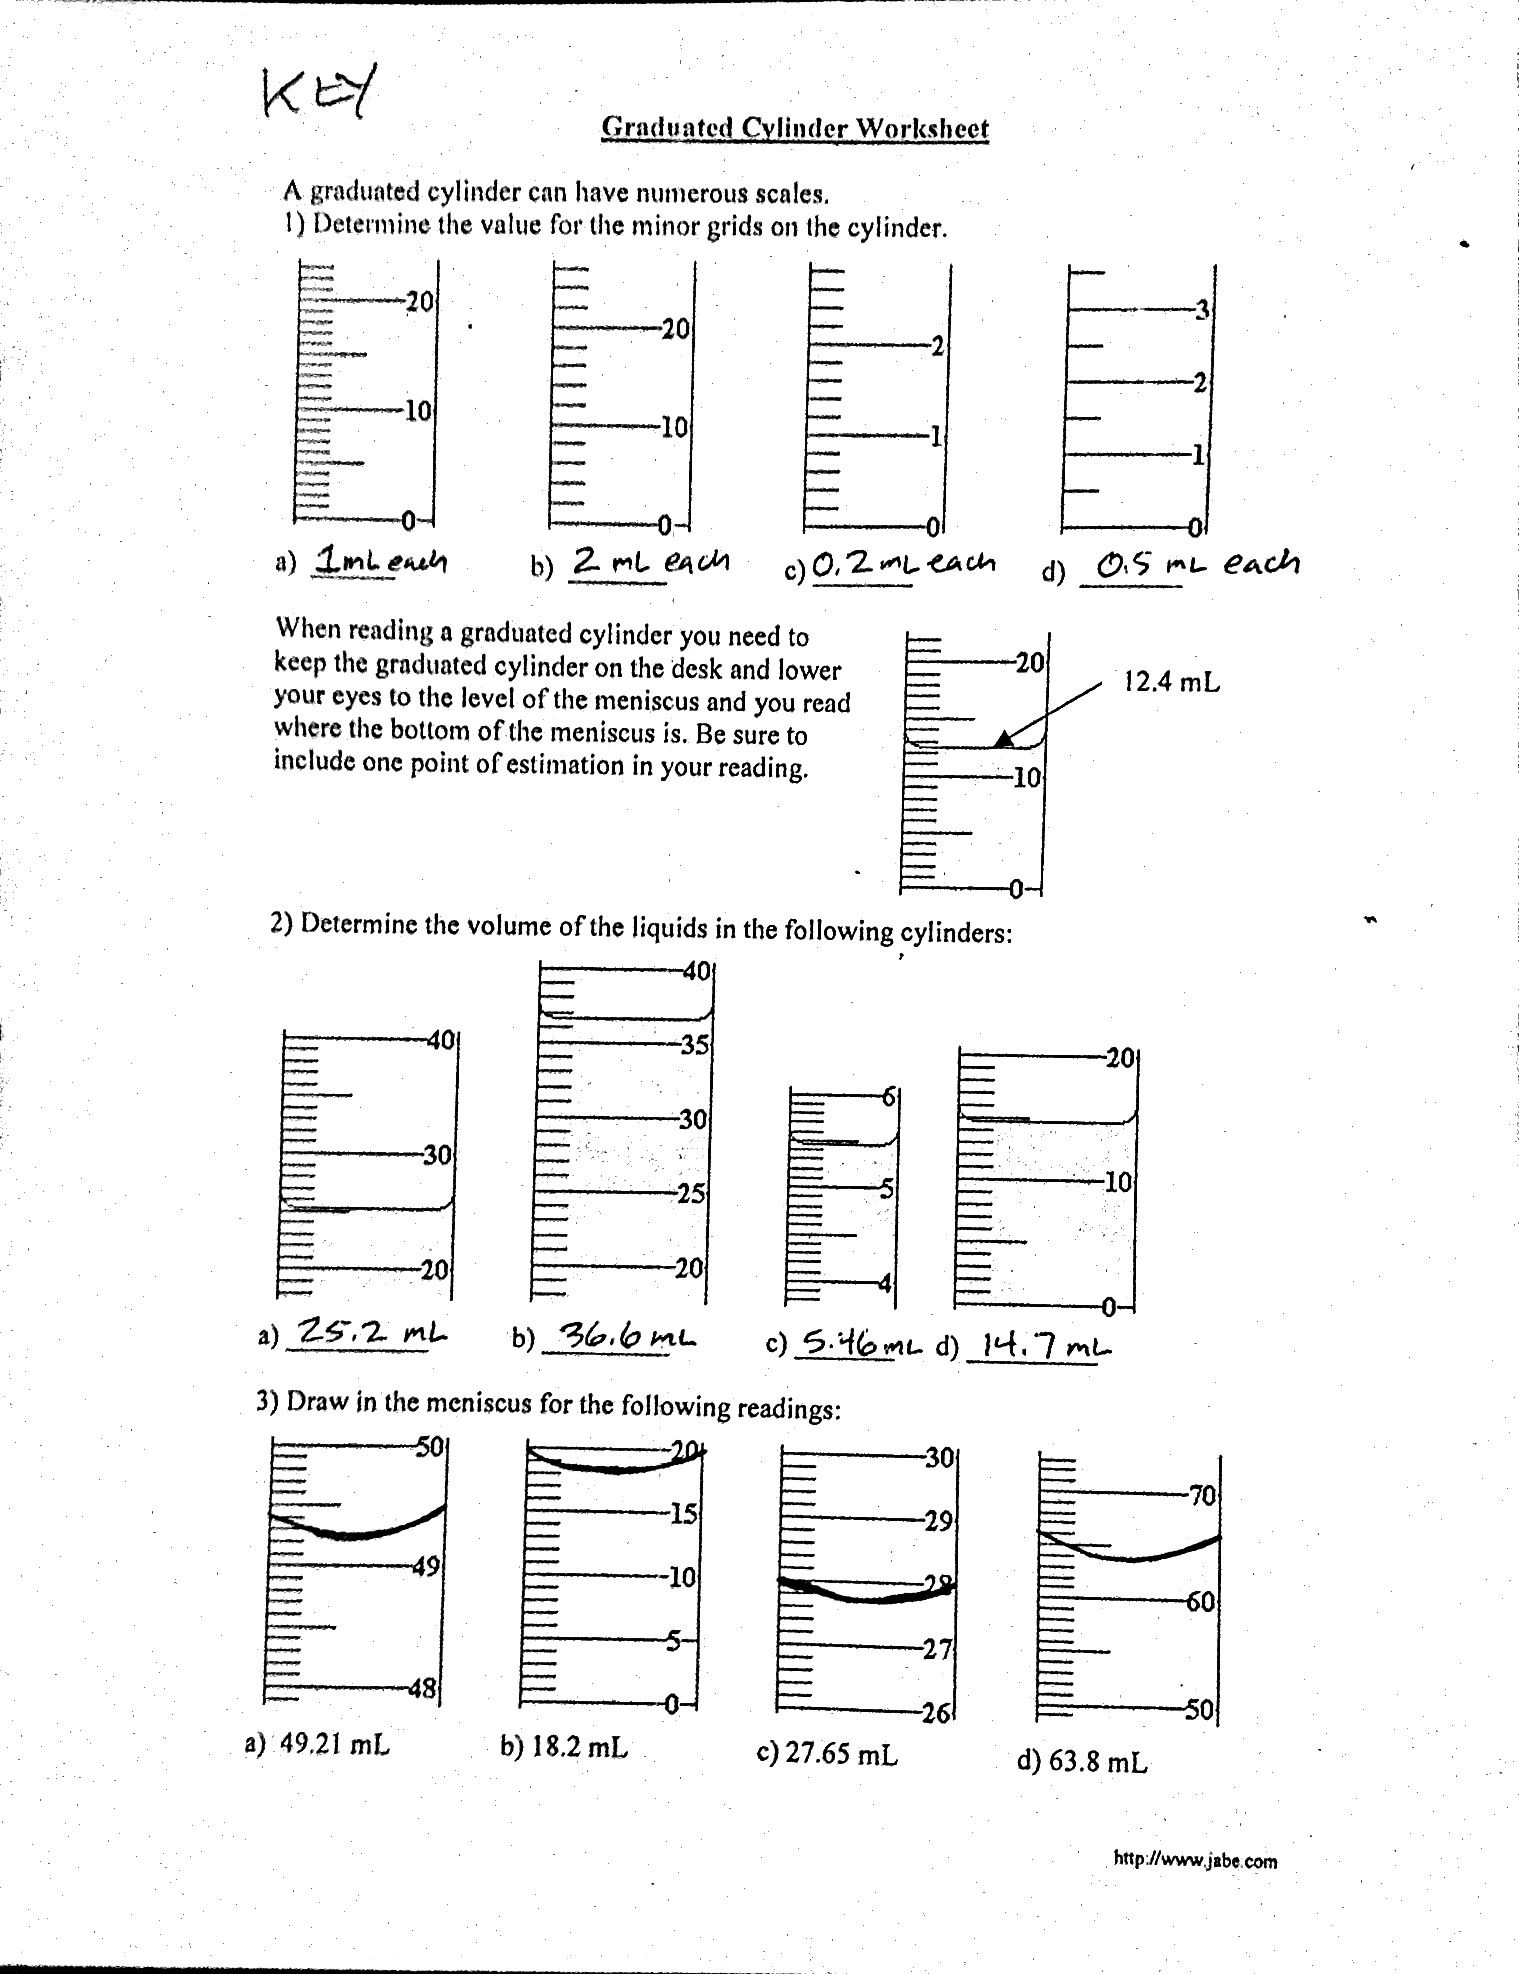 Worksheets Triple Beam Balance Practice Worksheet measurement mass and volume mr gibbs science 20 key graduated cylinder worksheet